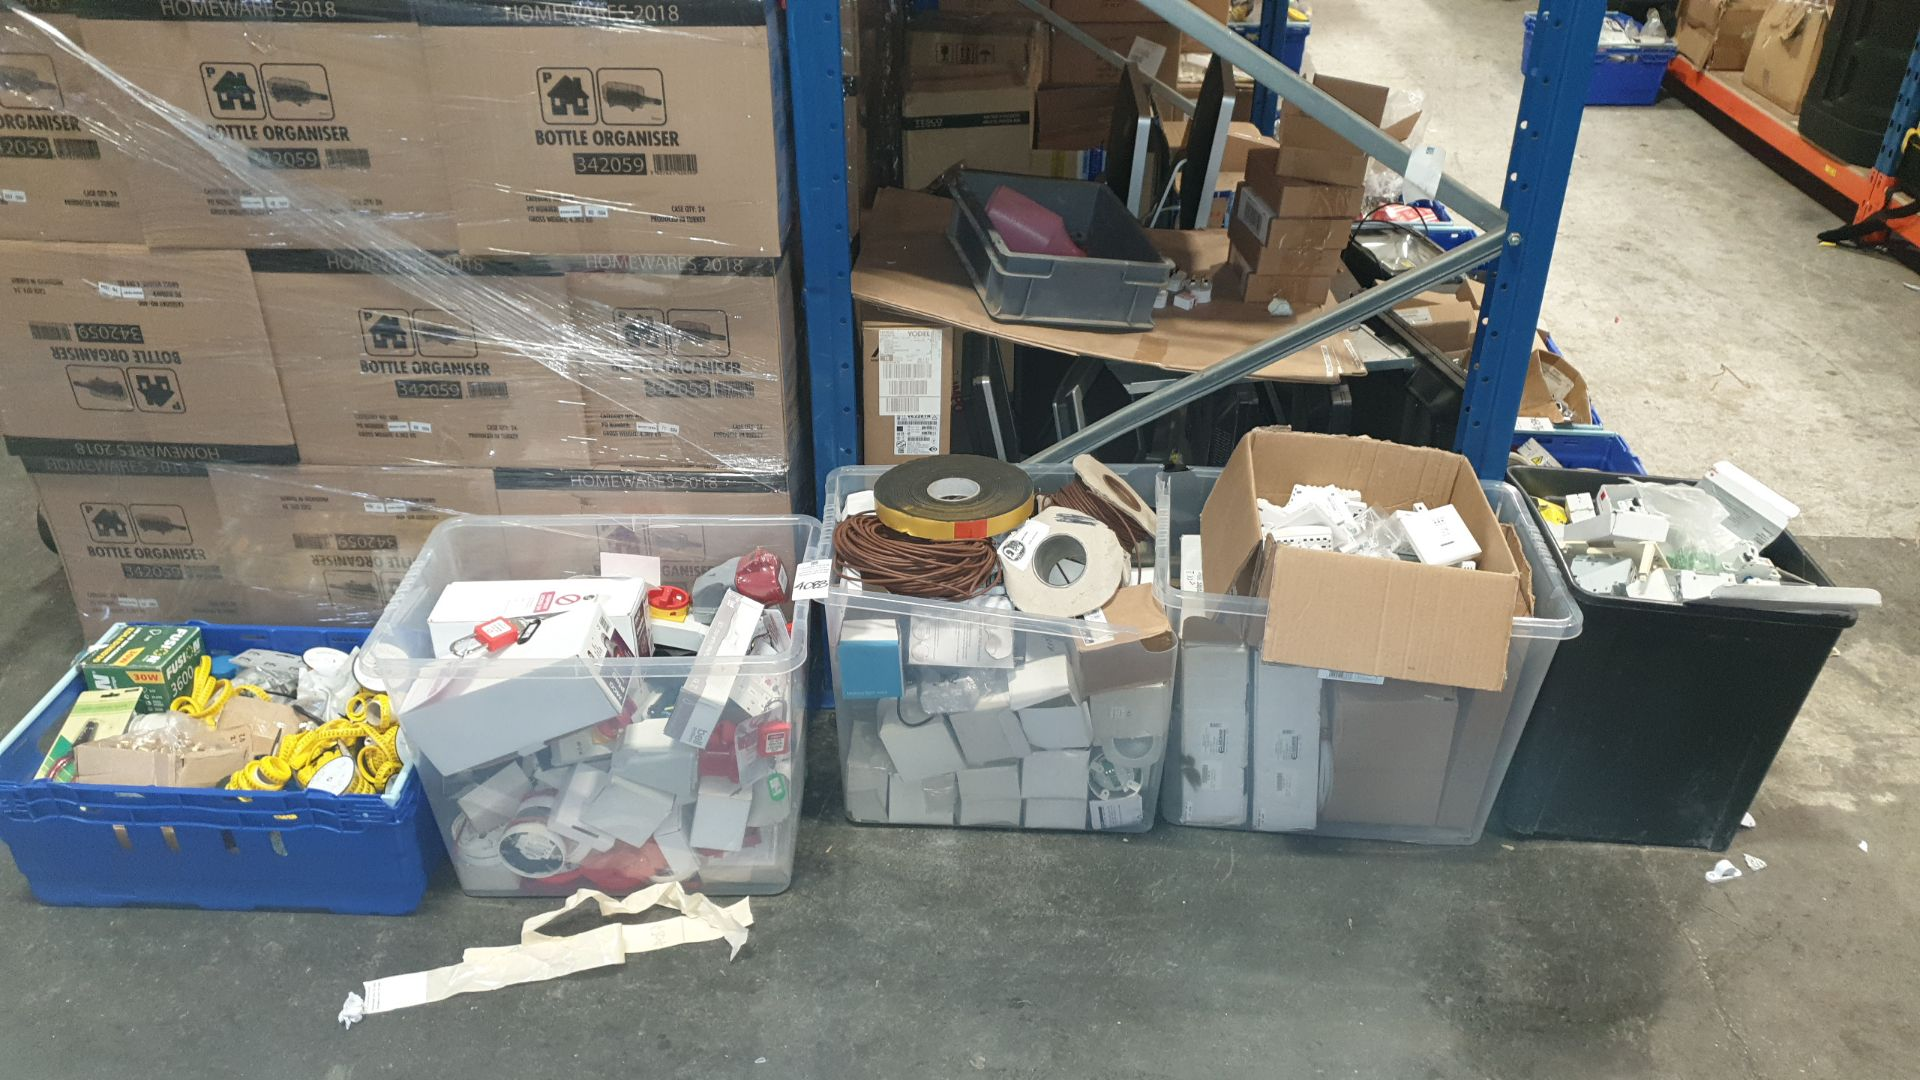 MIXED ELECTRICAL LOT IN 5 TRAYS/BOXES CONTAINING FUSION LAMPS 30W LED HID REPLACEMENT, VARIOUS